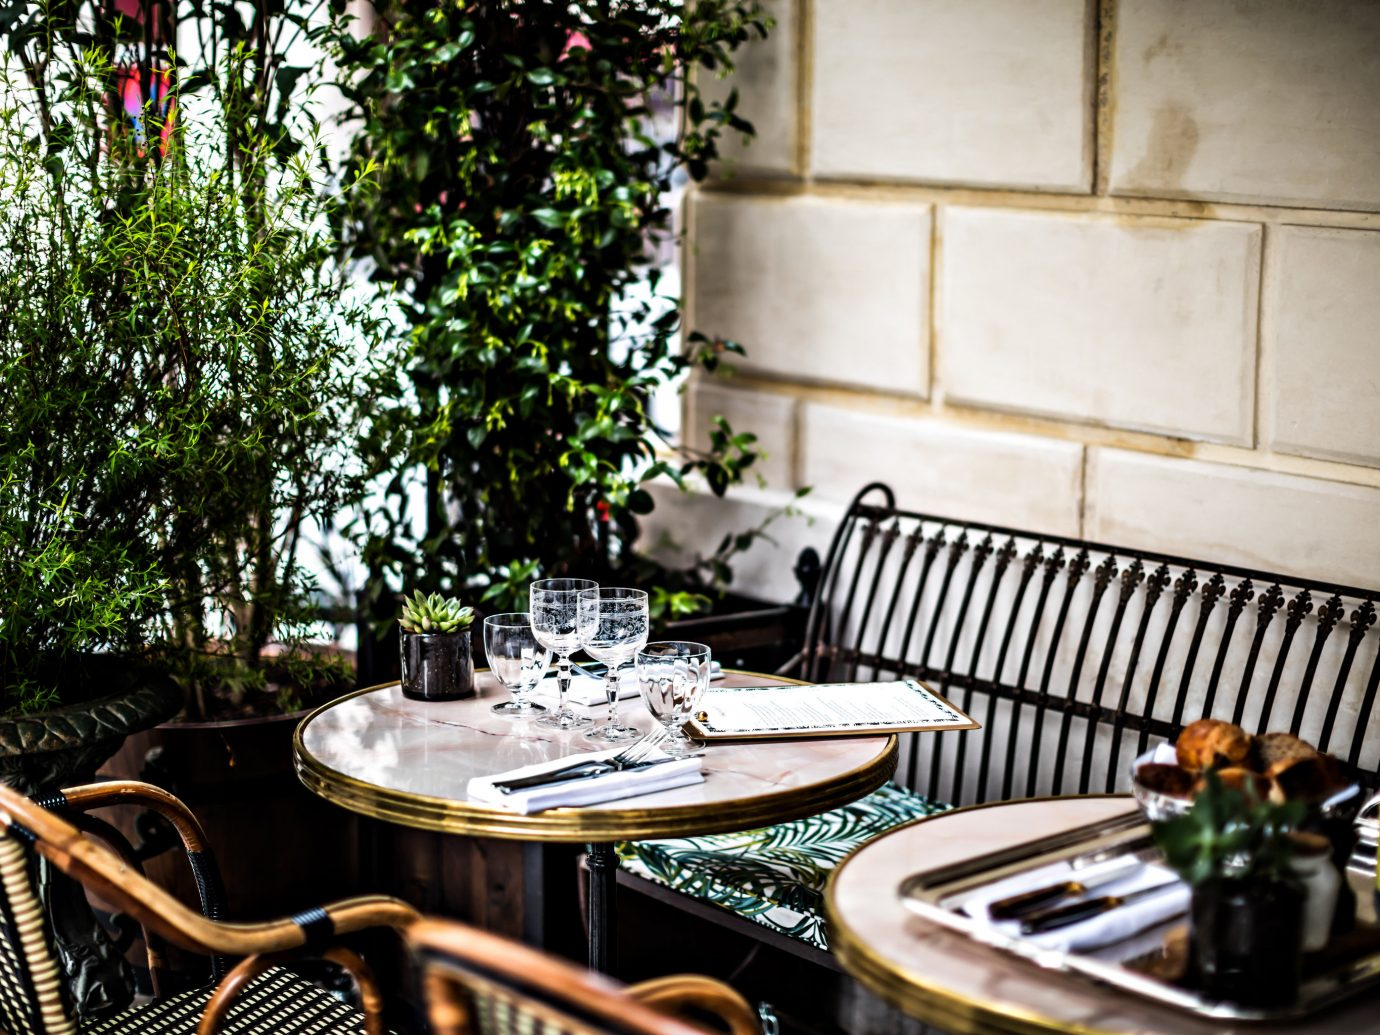 Boutique Hotels Hotels tree room restaurant estate meal home interior design backyard table dining table